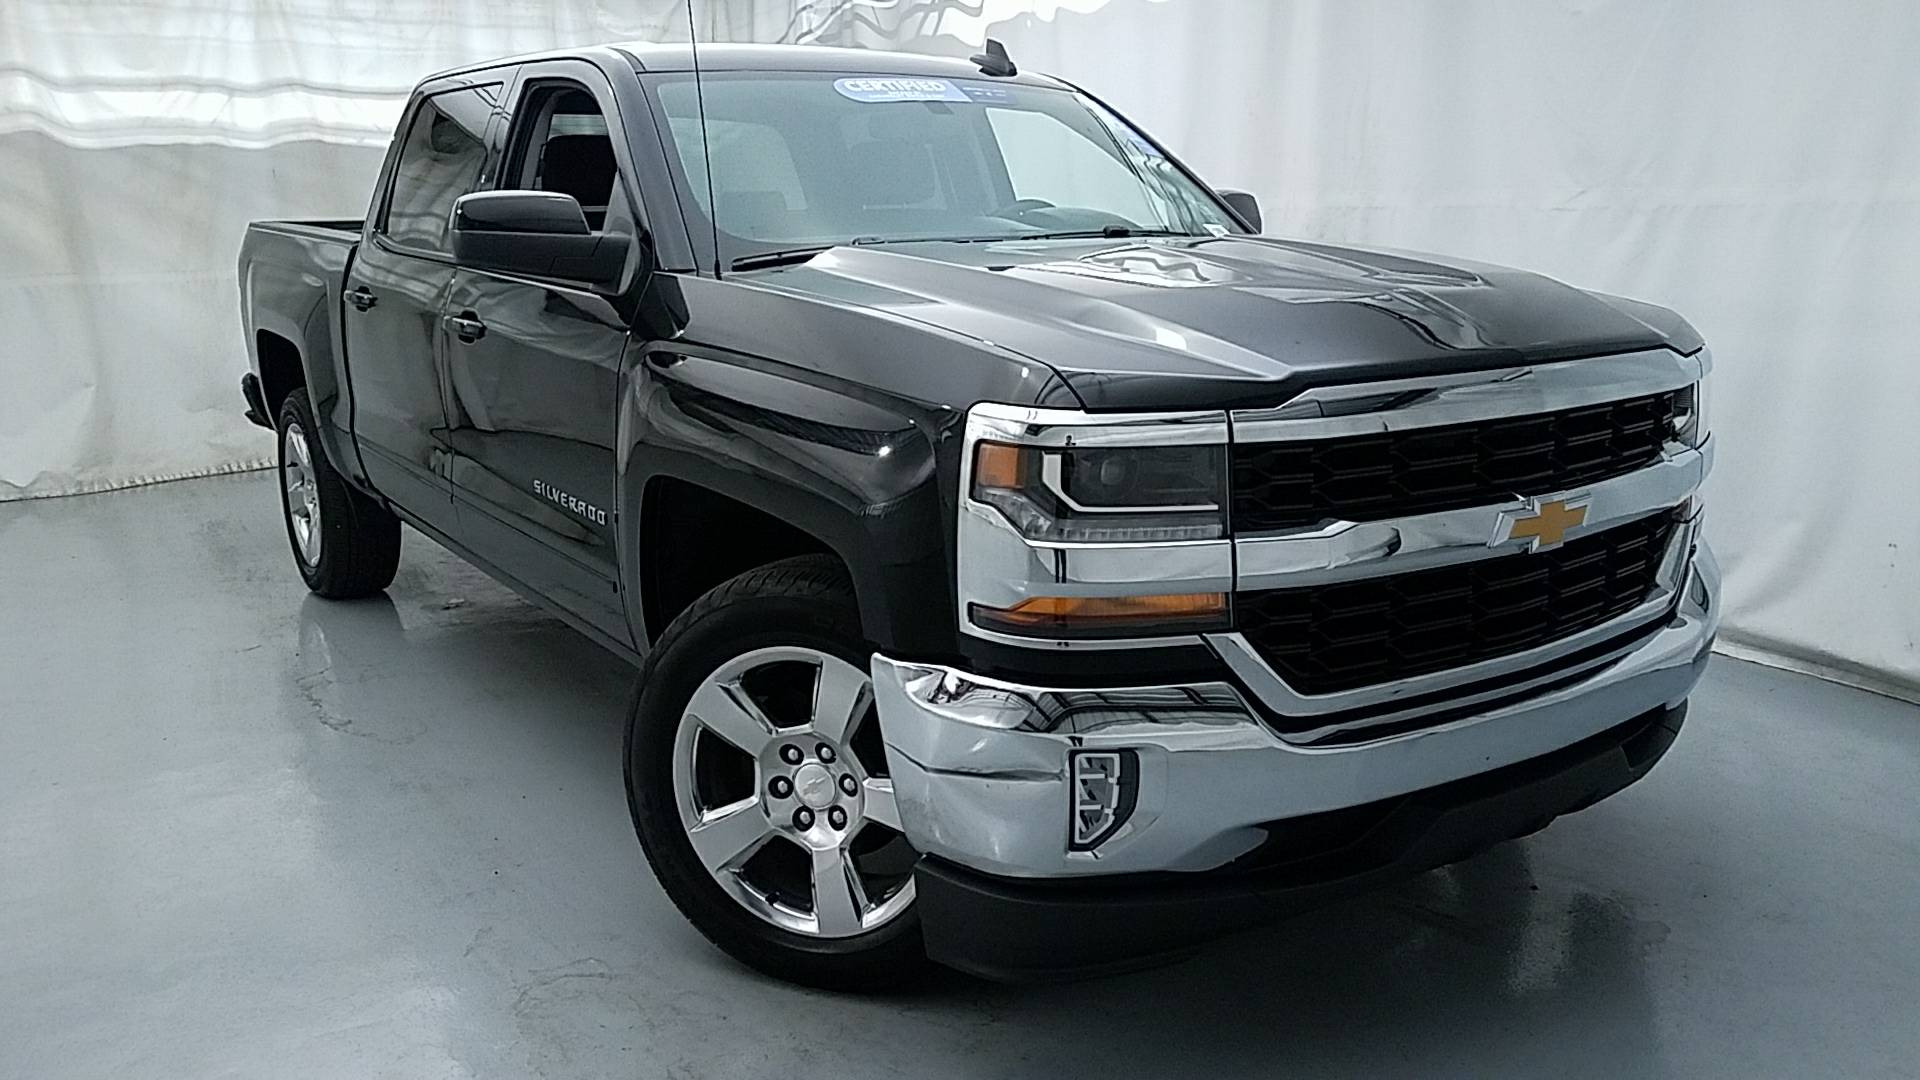 used Chevrolet Avalanche at Ross Downing Used Cars , Hammond